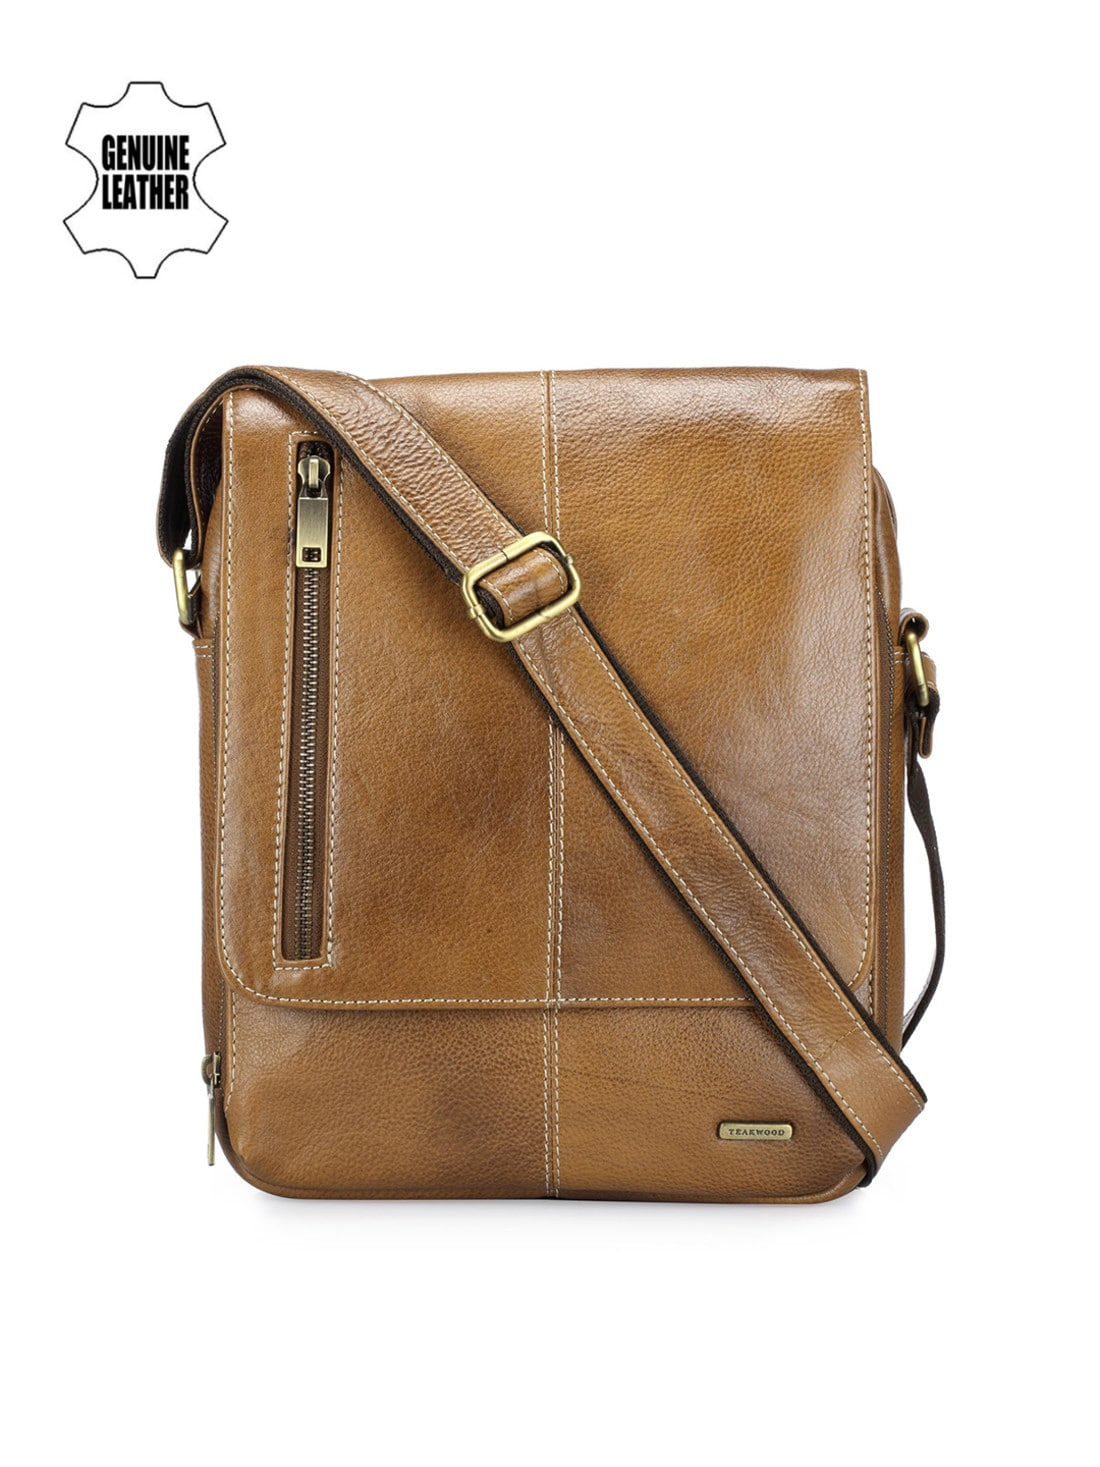 6a095f8d36 Leather Messenger Bags - Buy Leather Messenger Bags online in India at best  price